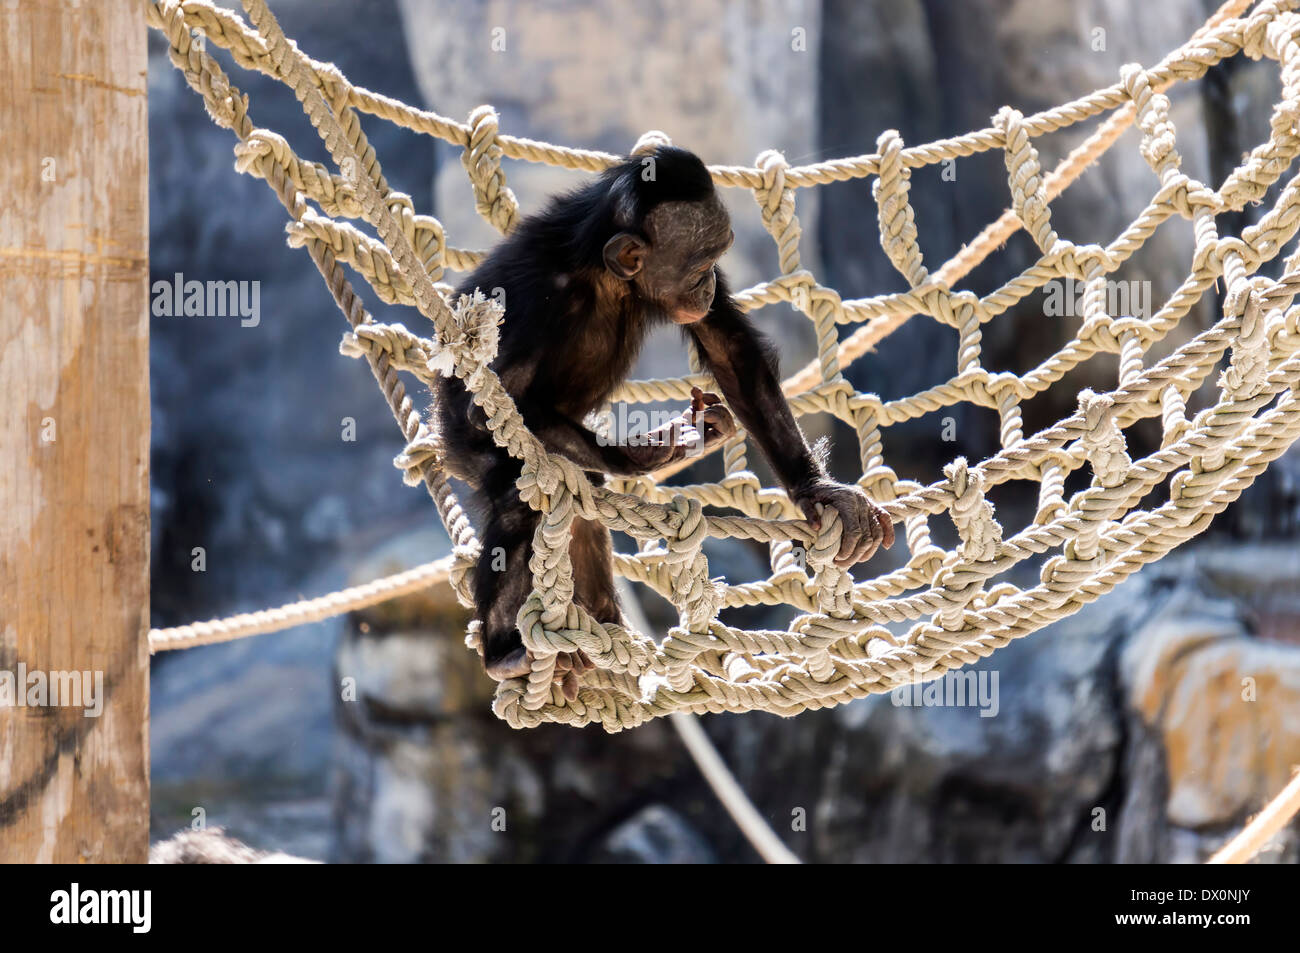 An endangered Bonobo (Pan paniscus) primate youngster plays on a rope net in his Jacksonville zoo enclosure. - Stock Image